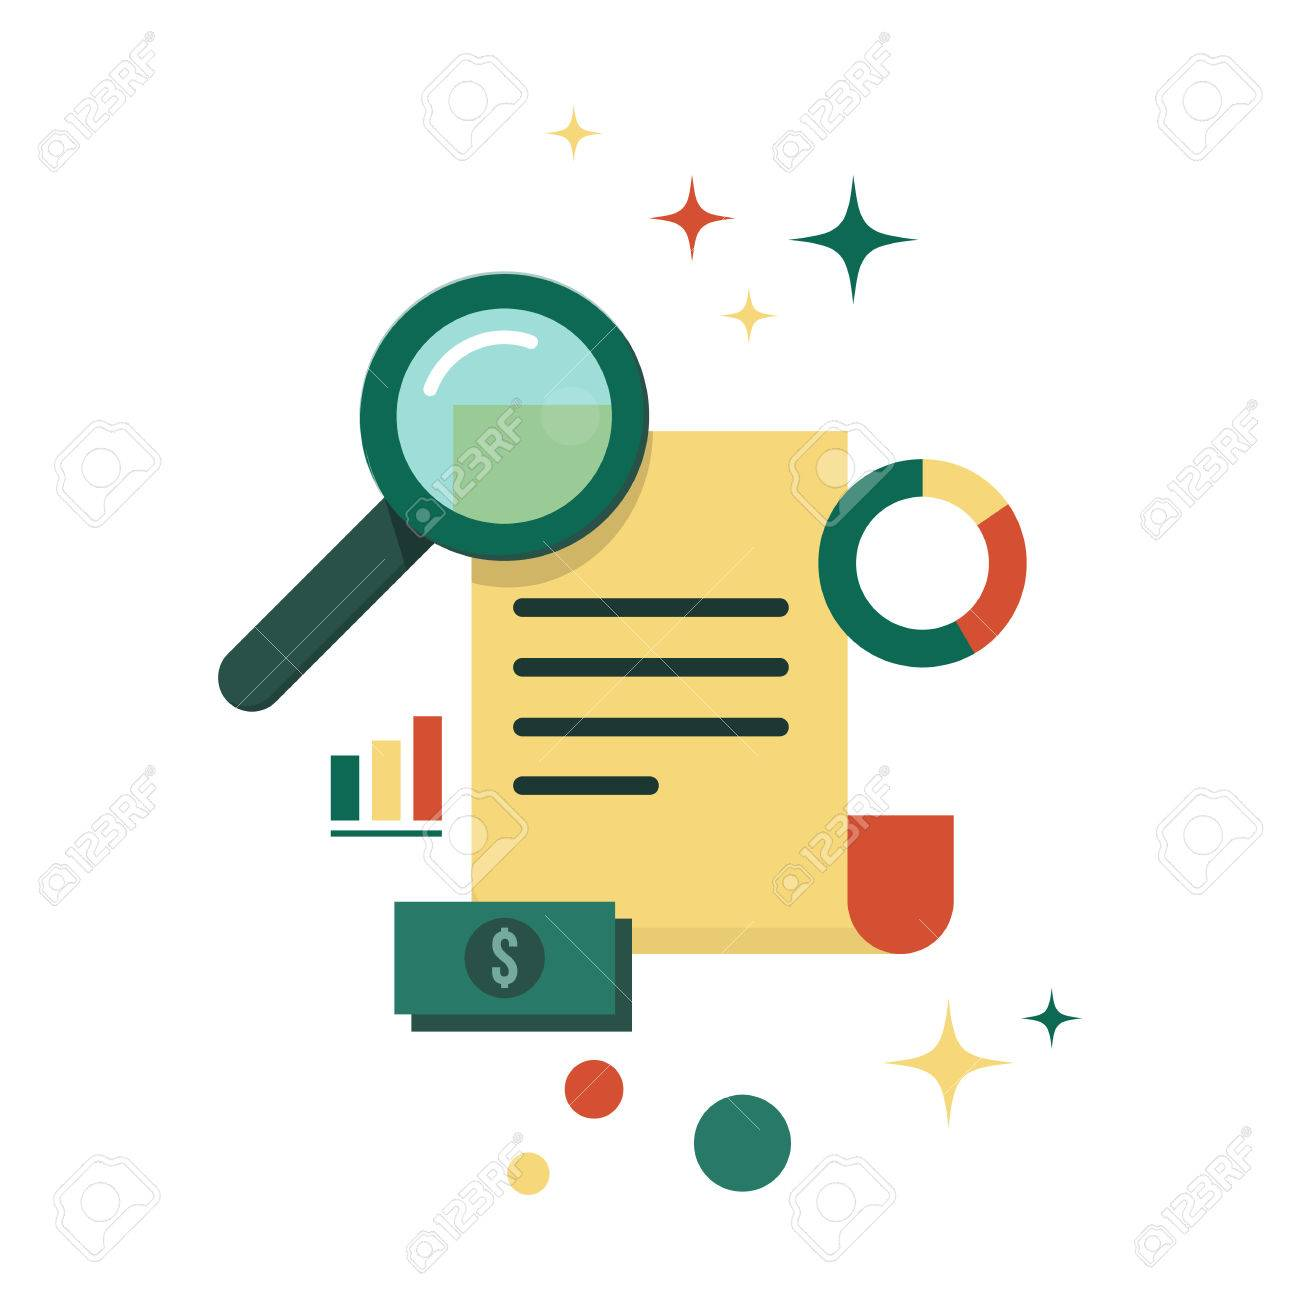 Vector illustration with magnifying glass, paper page or document, round diagram, finance graph, money. Business report. Education or business analytics concept icon isolated on white background - 50264768